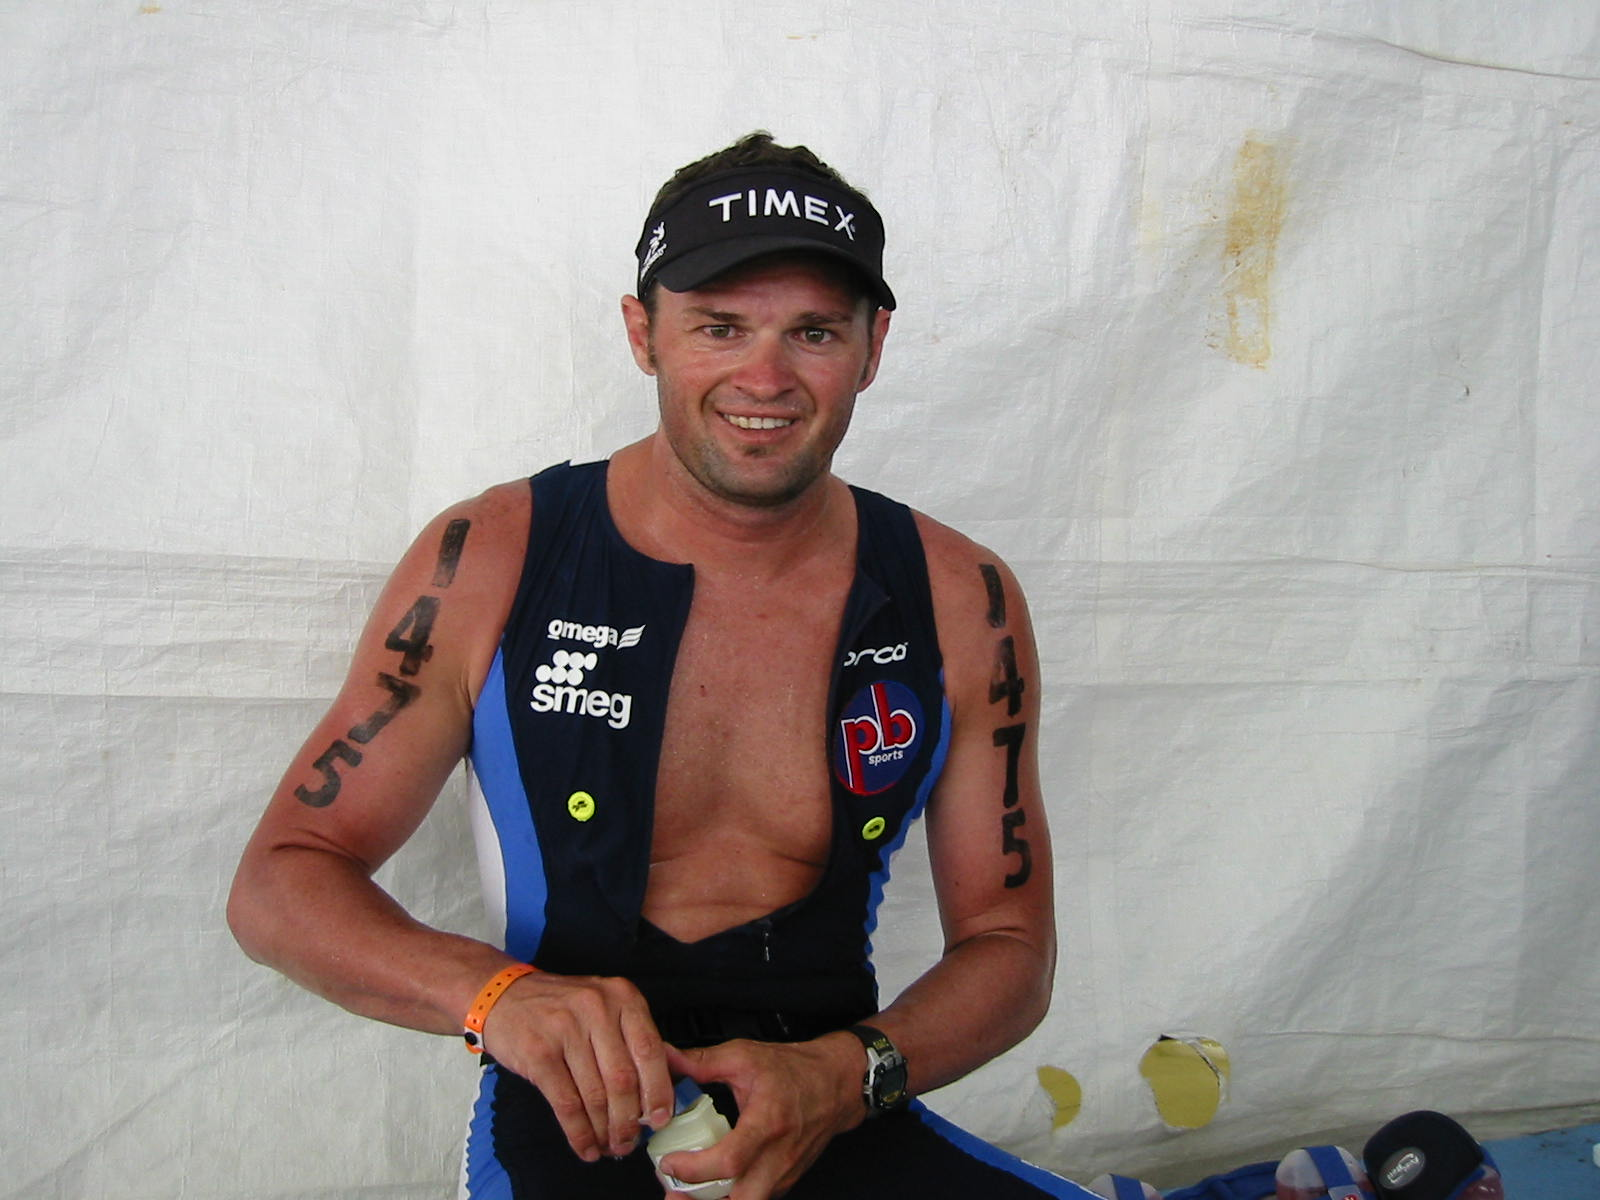 Triathlon - Simon Webber